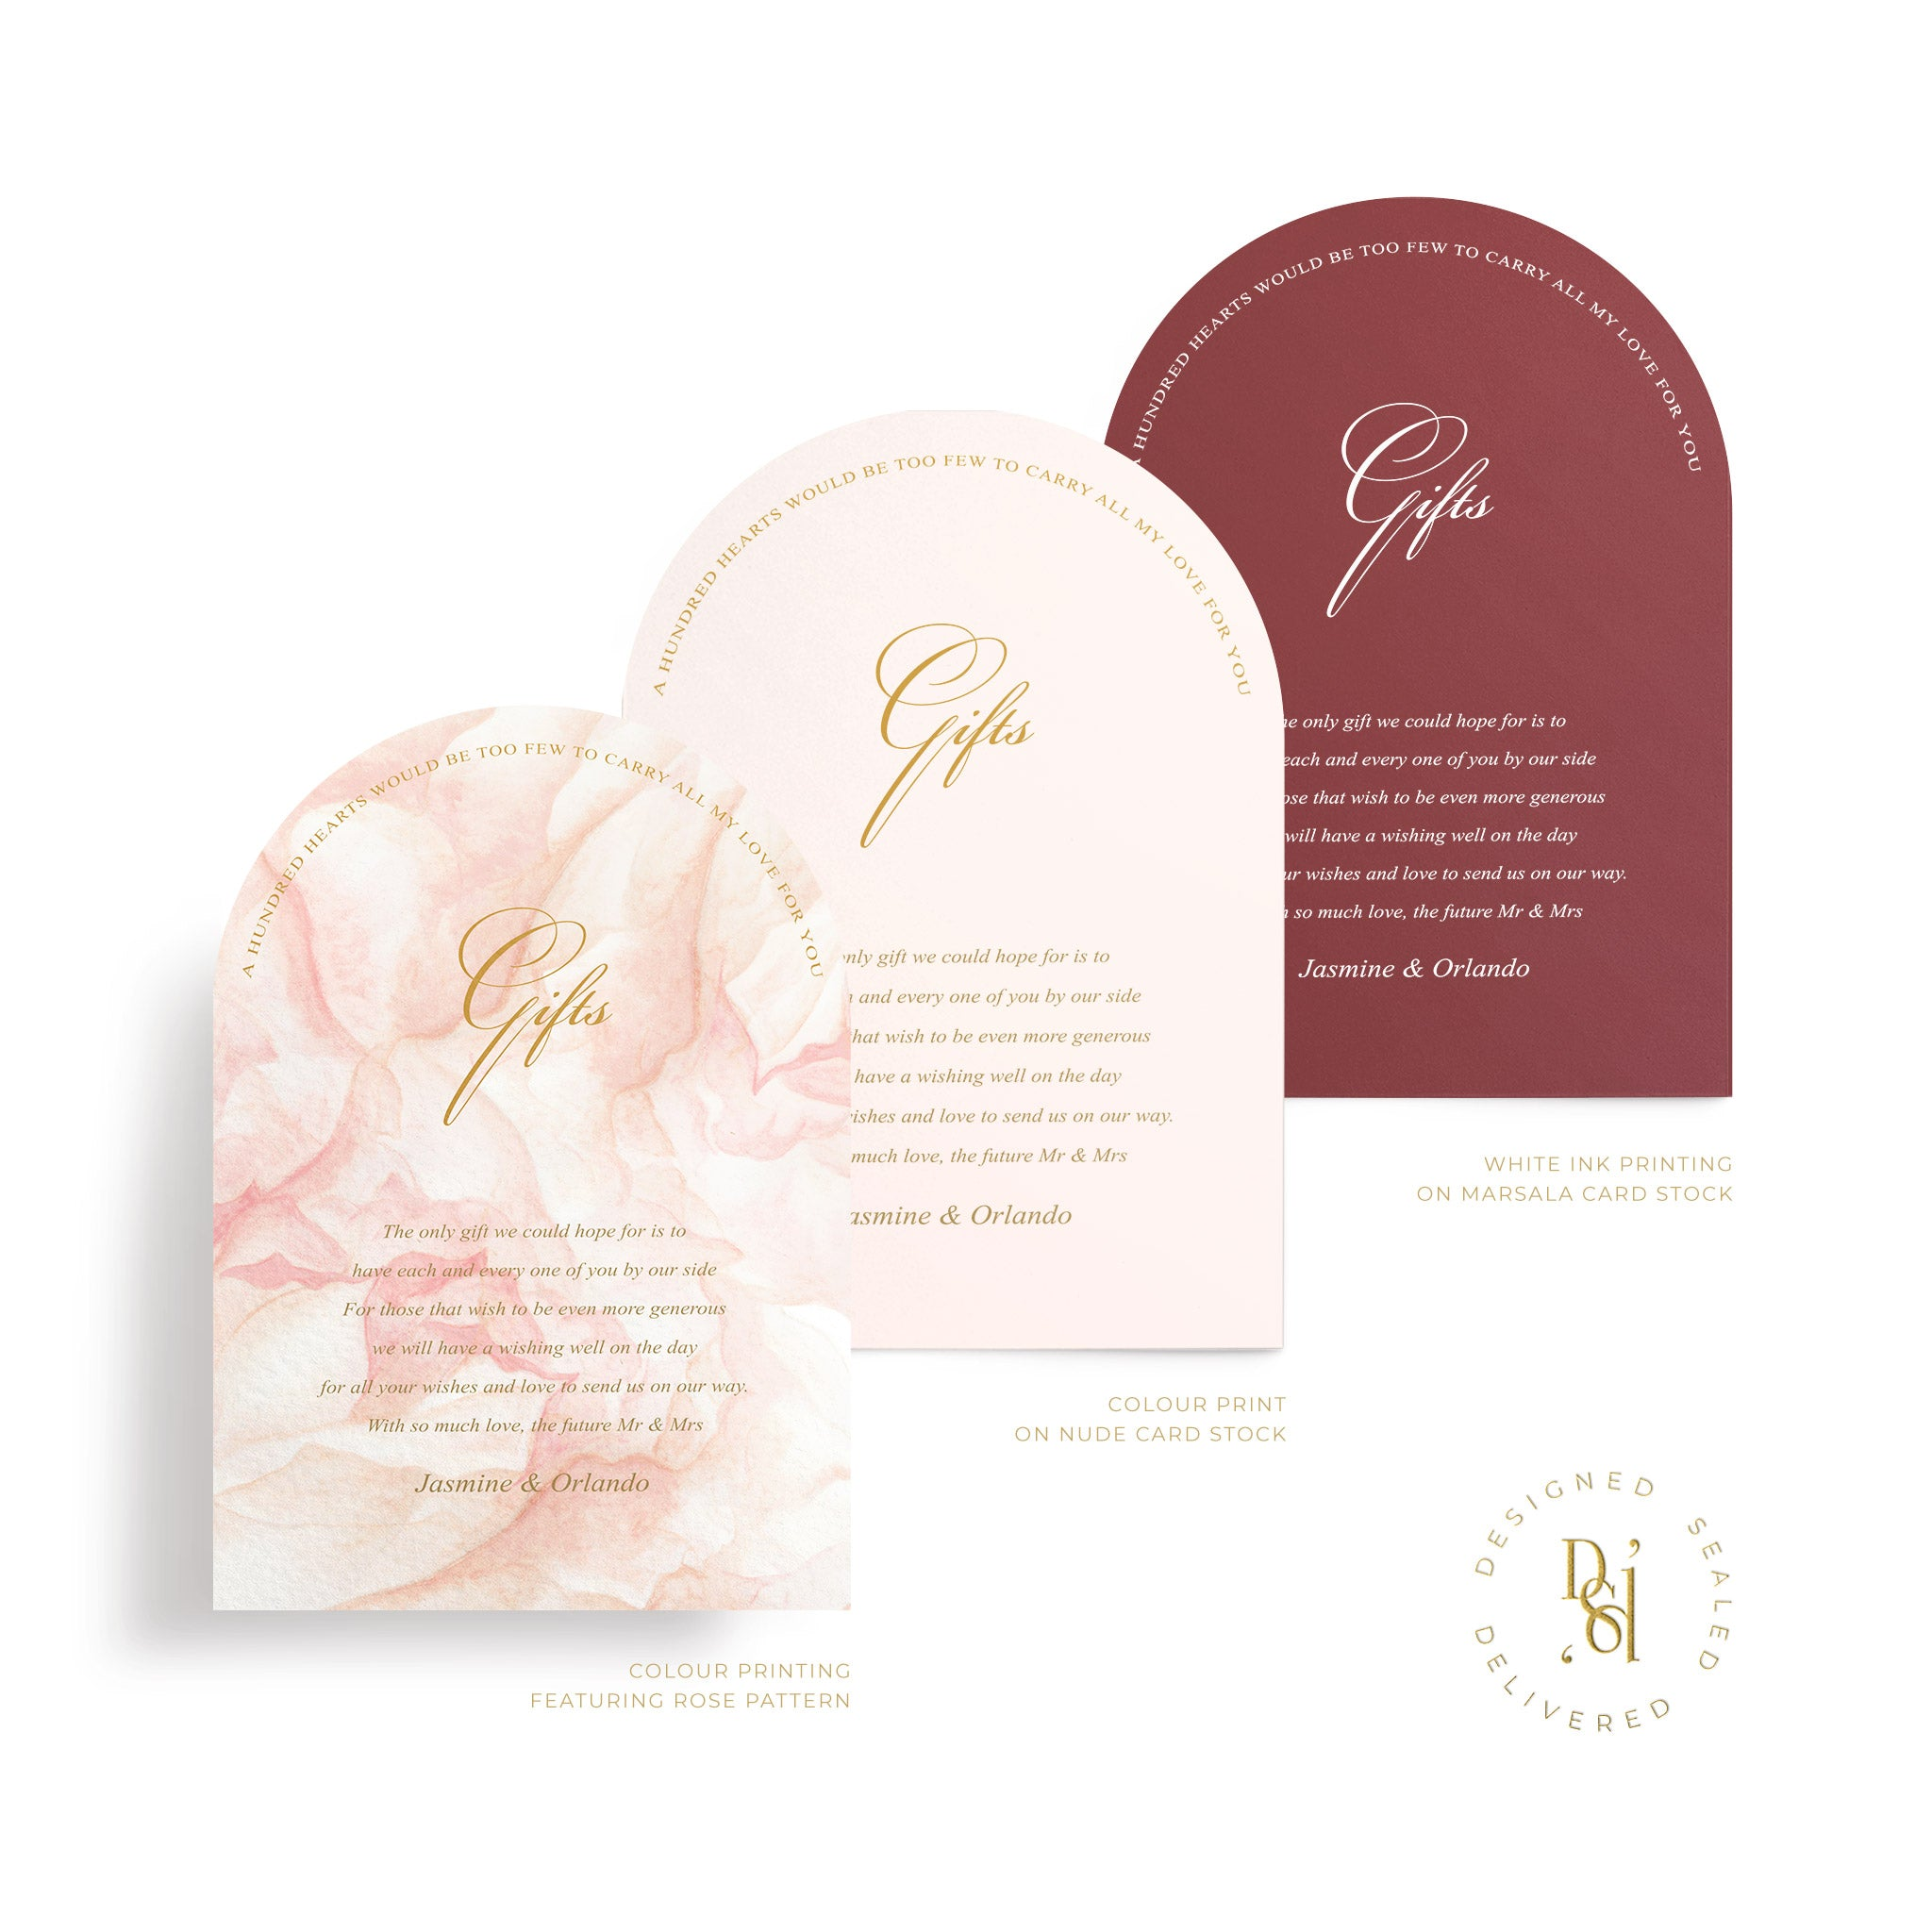 Rosé Collection: Arched Gifts card in variety of print options; rosé pattern print, colour print, white ink